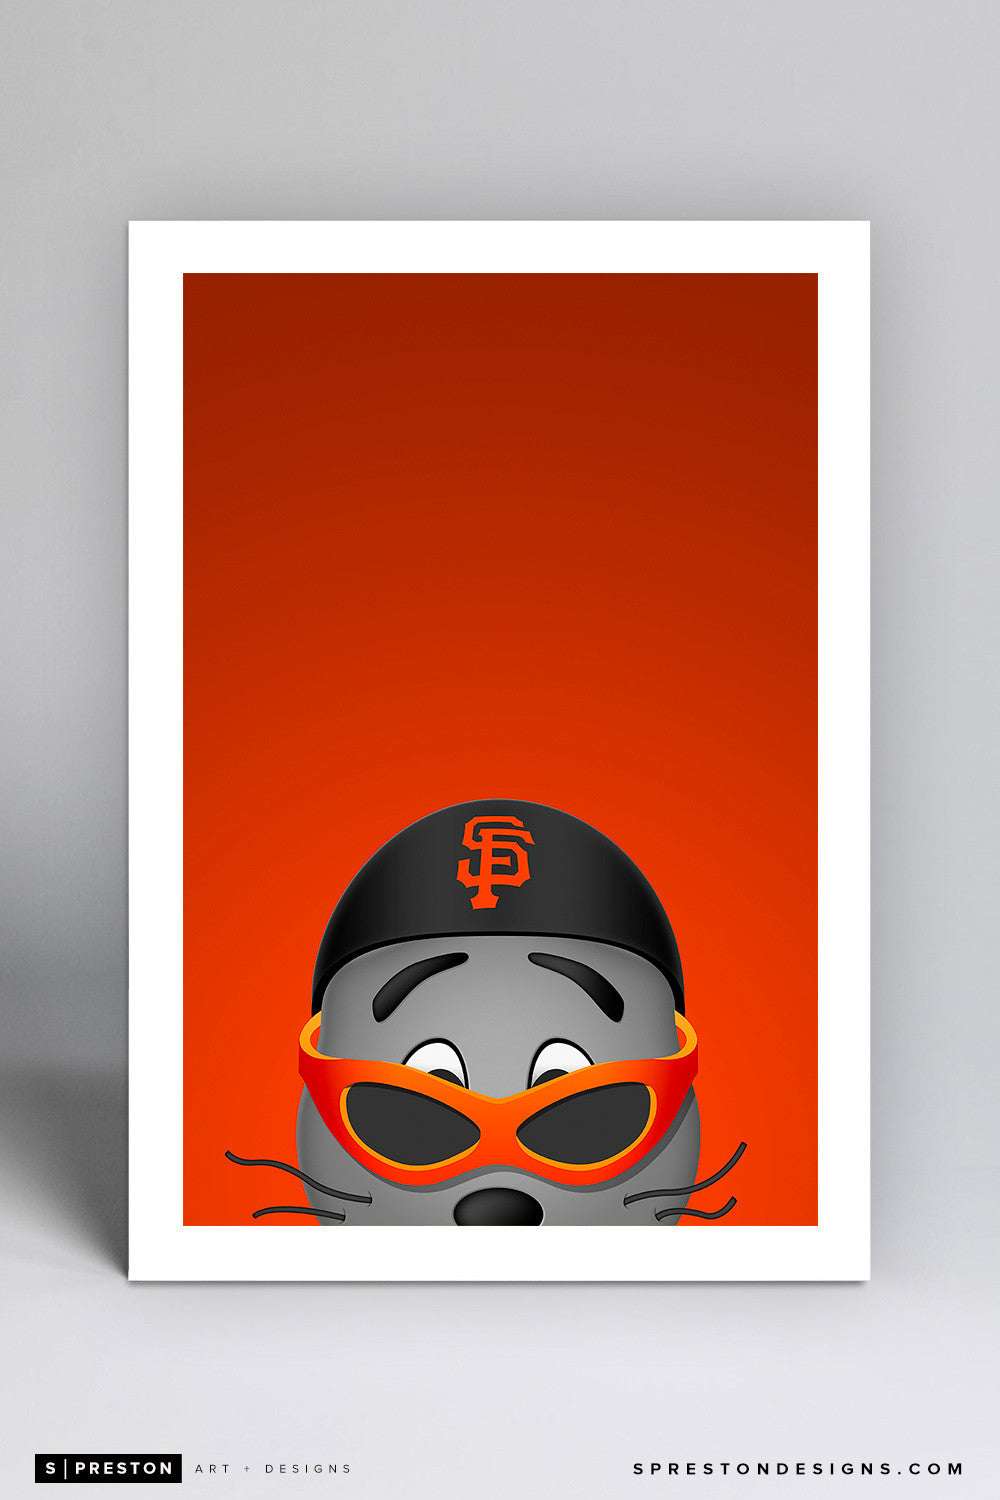 Minimalist Lou Seal Art Print - San Francisco Giants - S. Preston Art + Designs